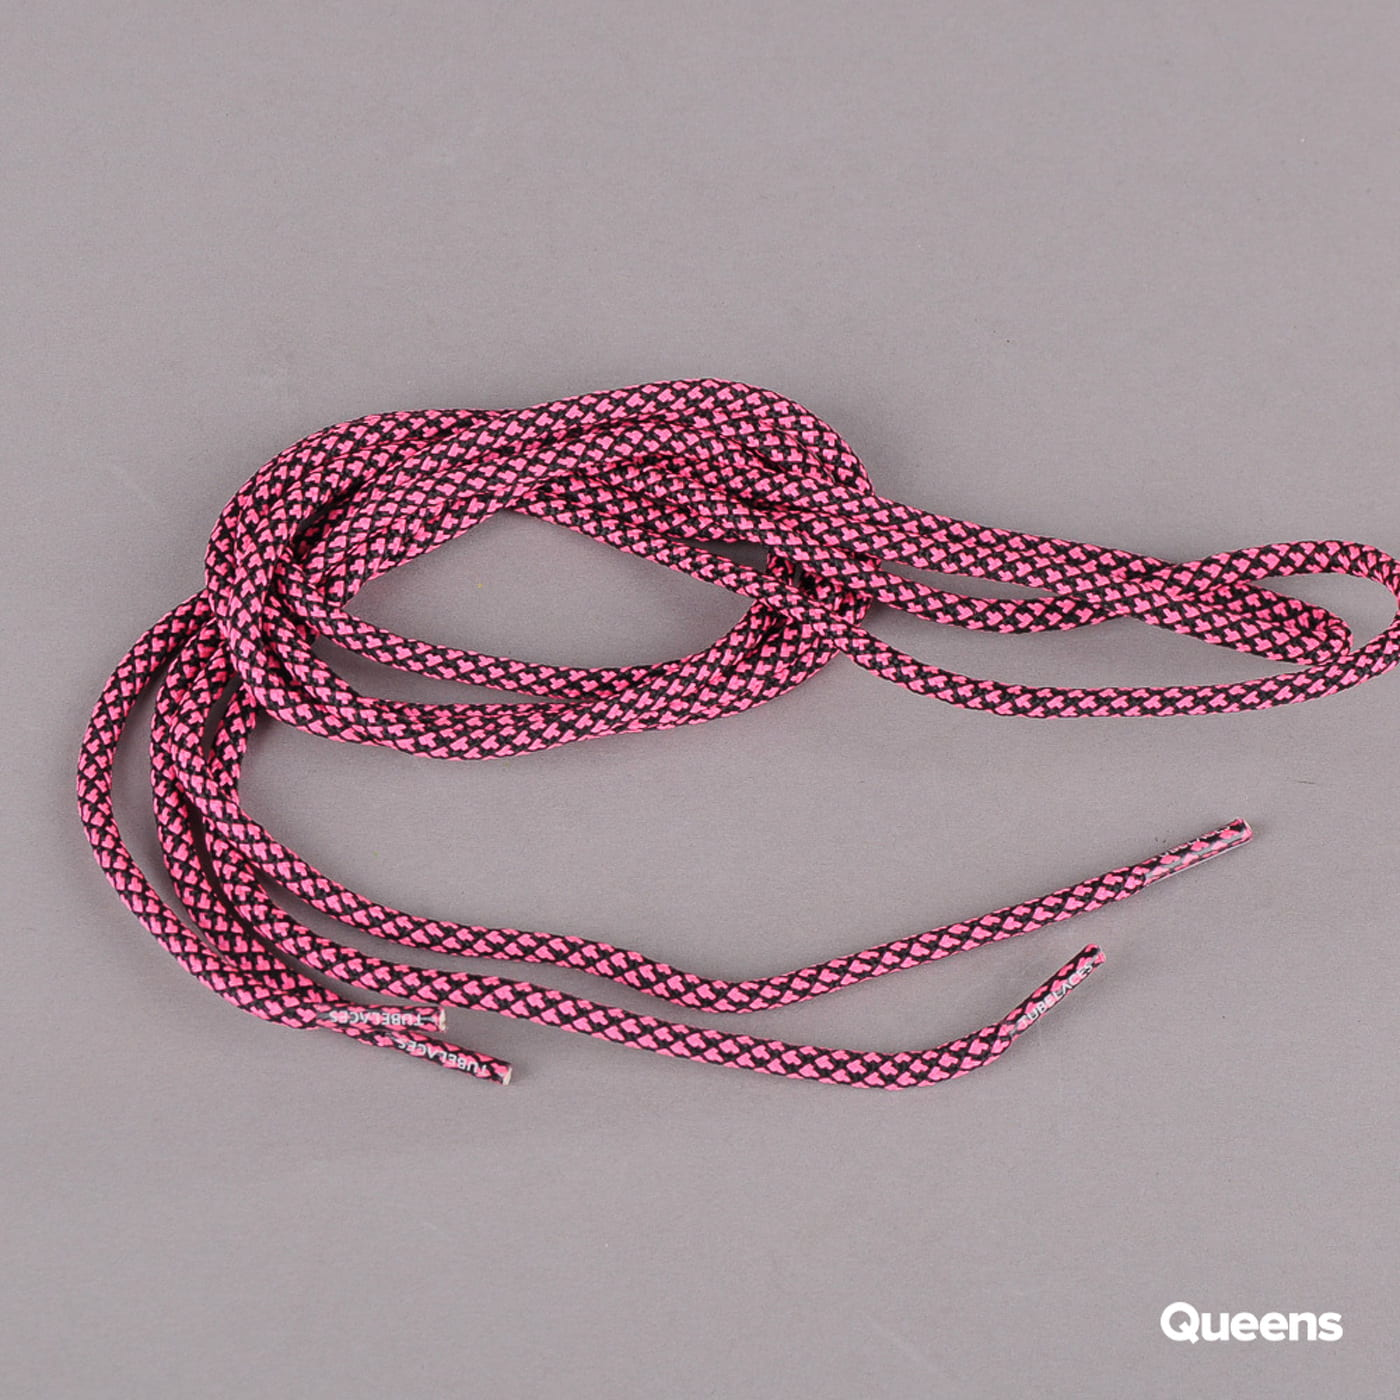 MD Tube Laces Rope Multi schwarz / neonrosa